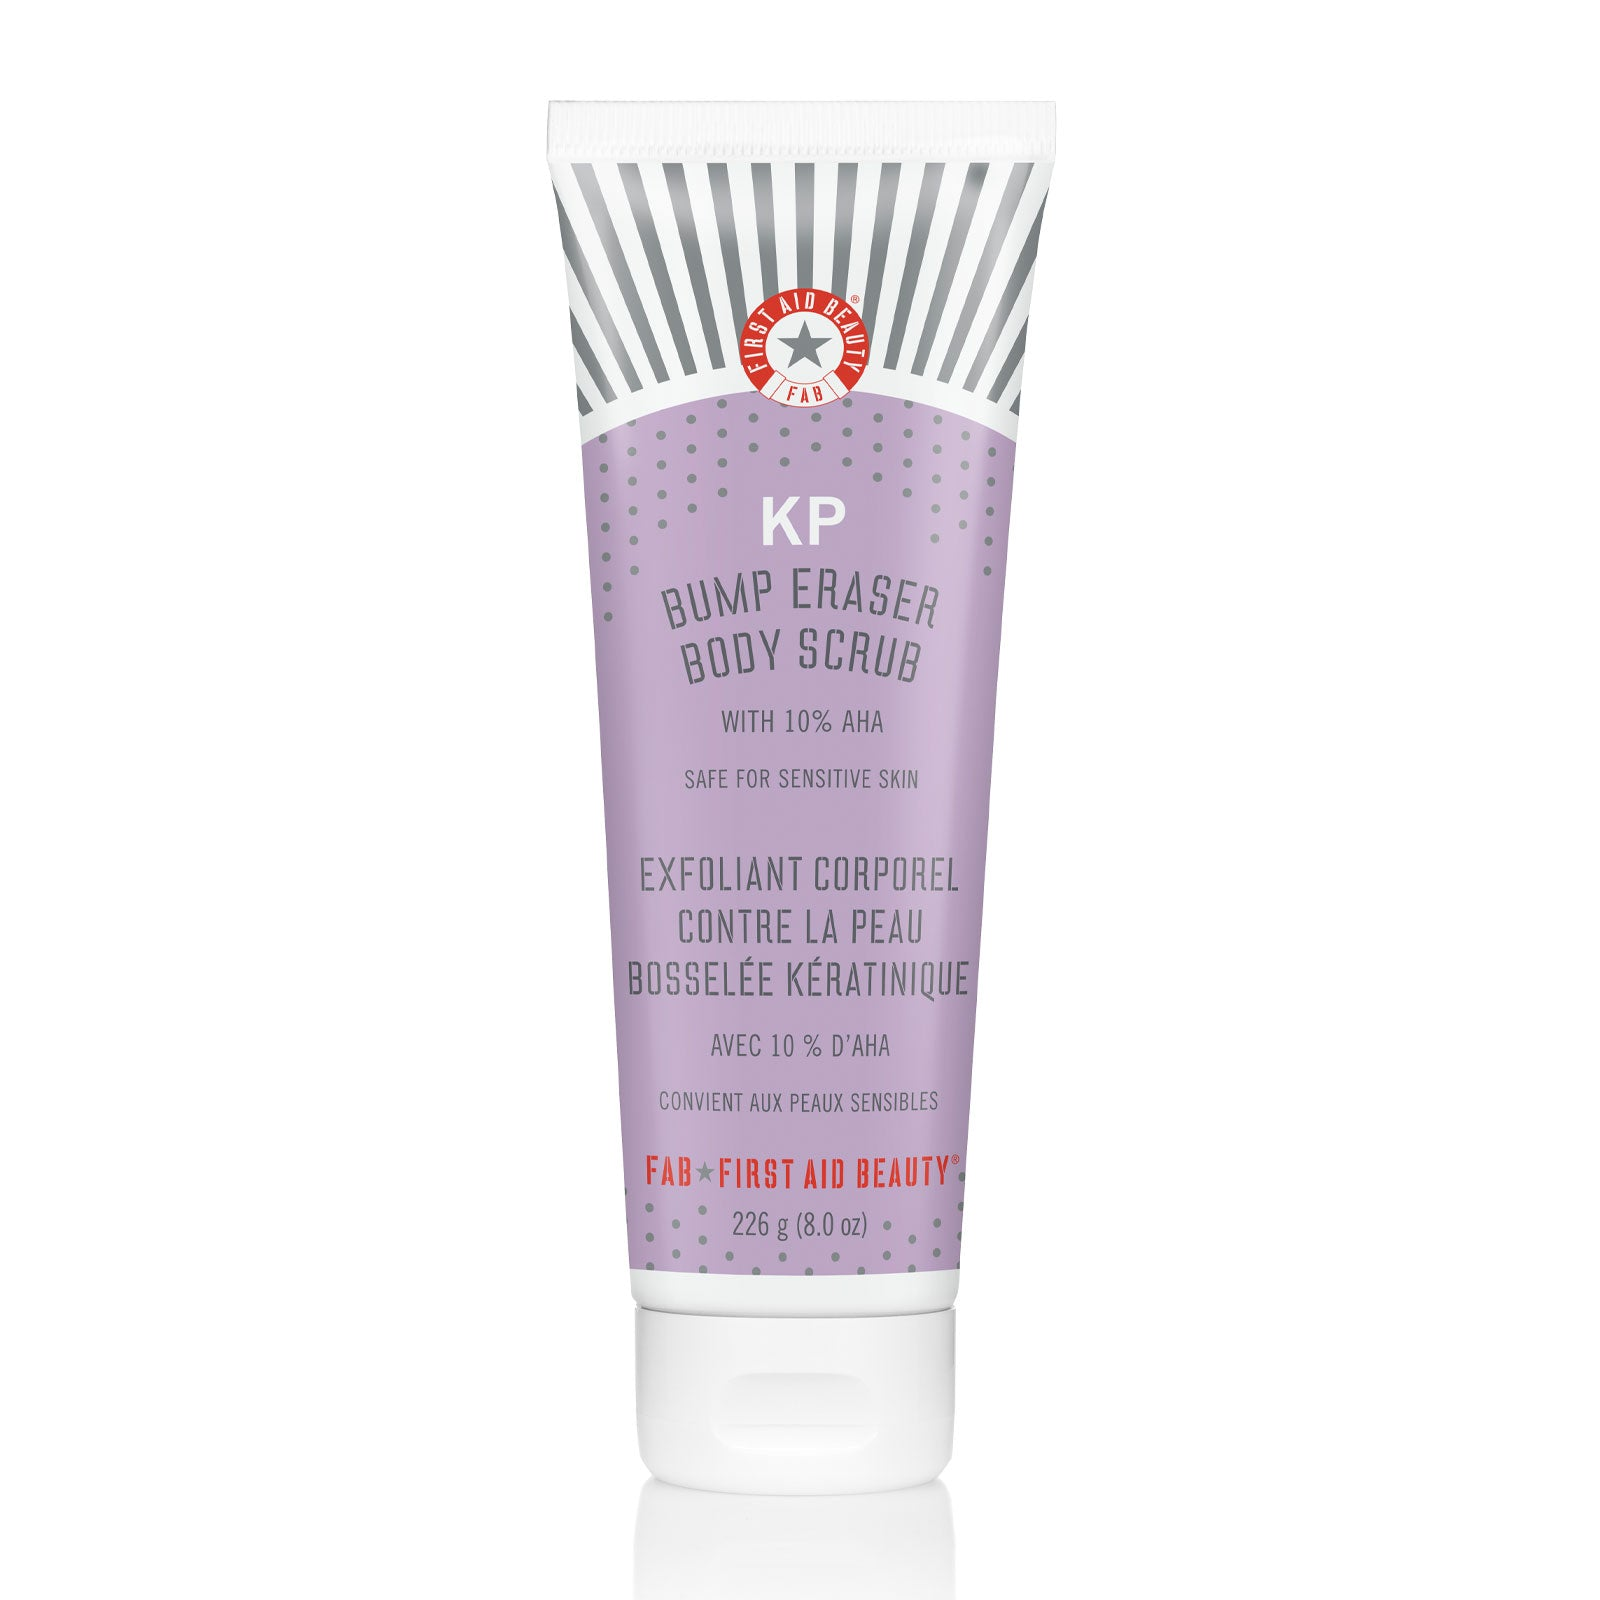 First Aid Beauty KP Bump Eraser Body Scrub with 10% AHA 226g